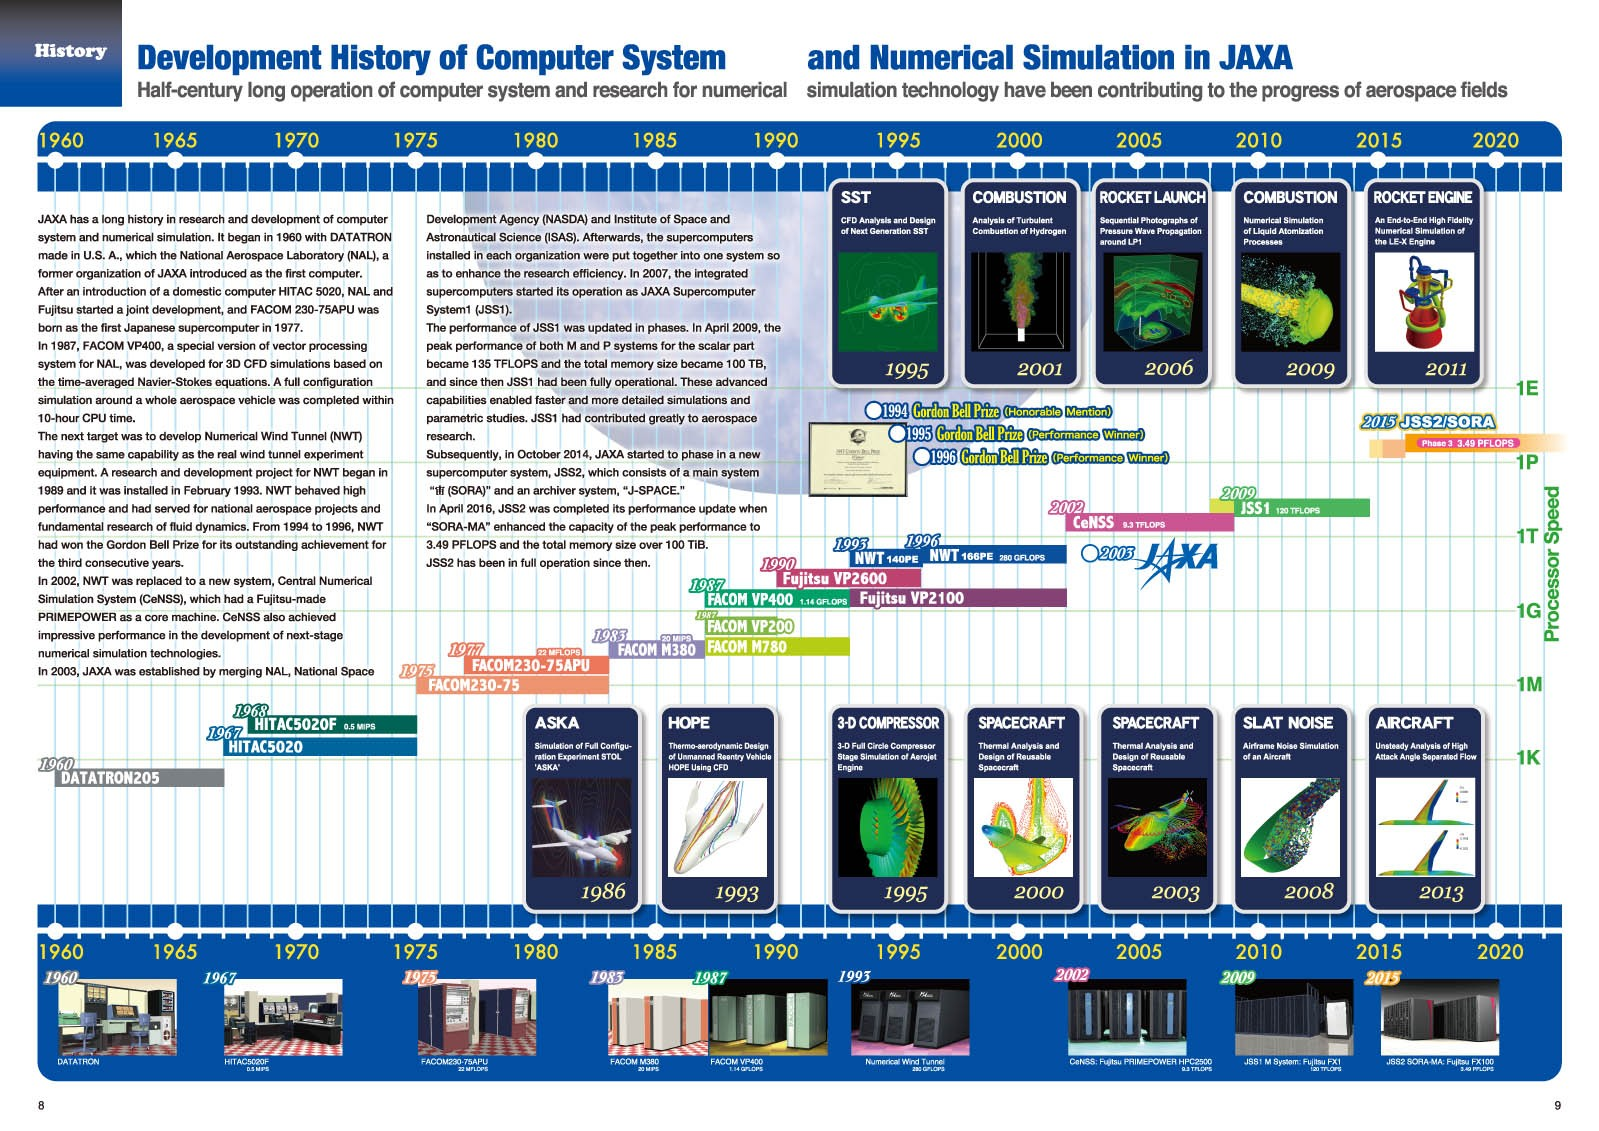 Chronological table and description of JAXA Supercomputers